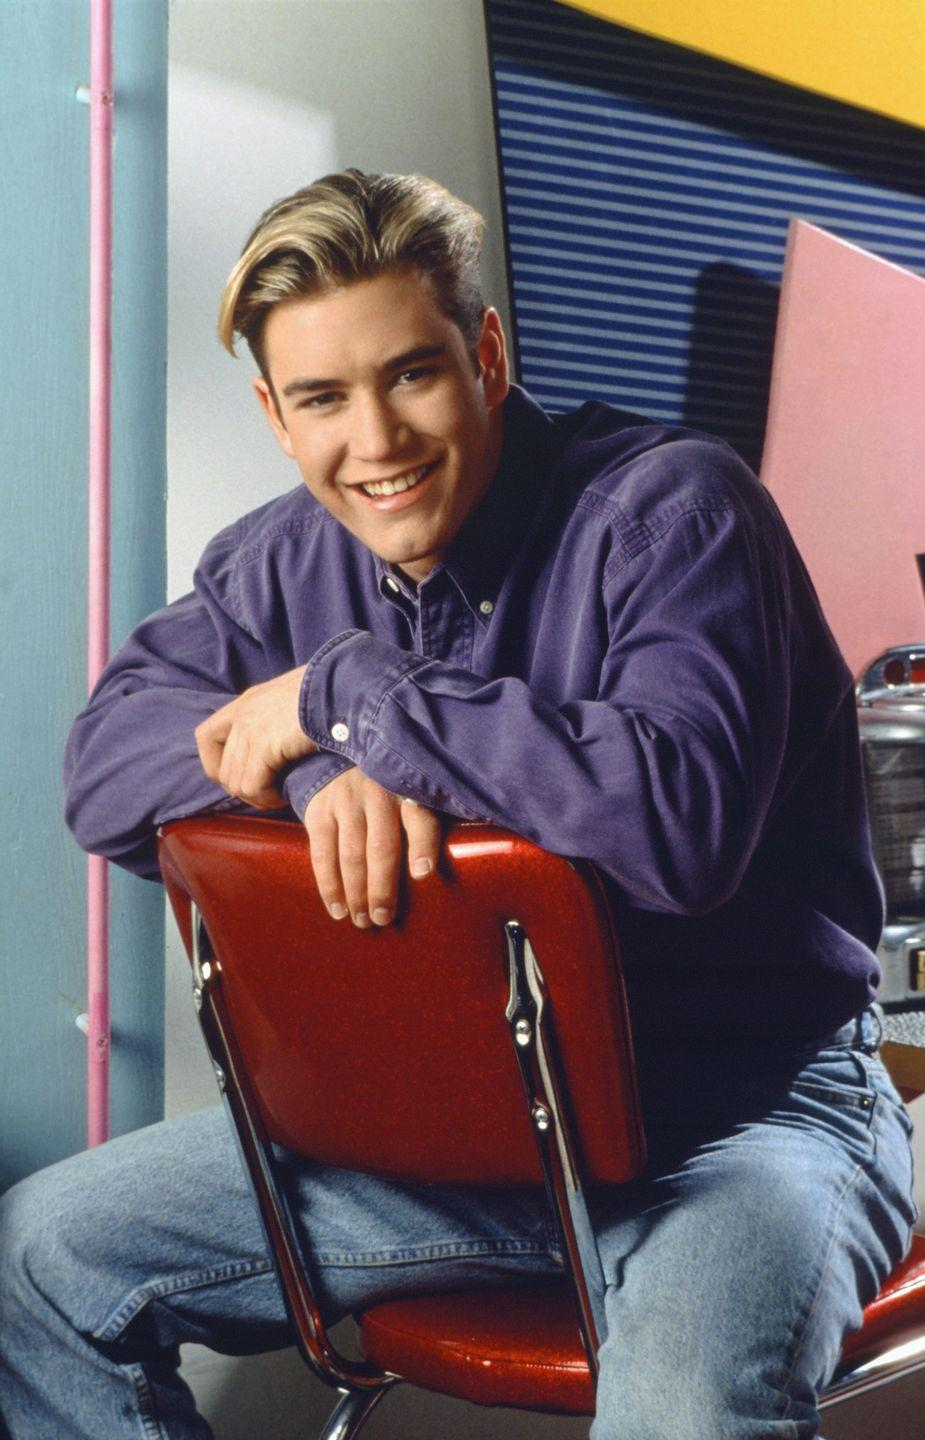 <p>Back in the day, there was no one cooler than Zack Morris. With his fourth-wall-breaking time outs, giant cell phone, and convoluted schemes, Zack ruled the school. And he was more than just a pretty face, too. Don't forget he got a 1502 on his SATs.</p>